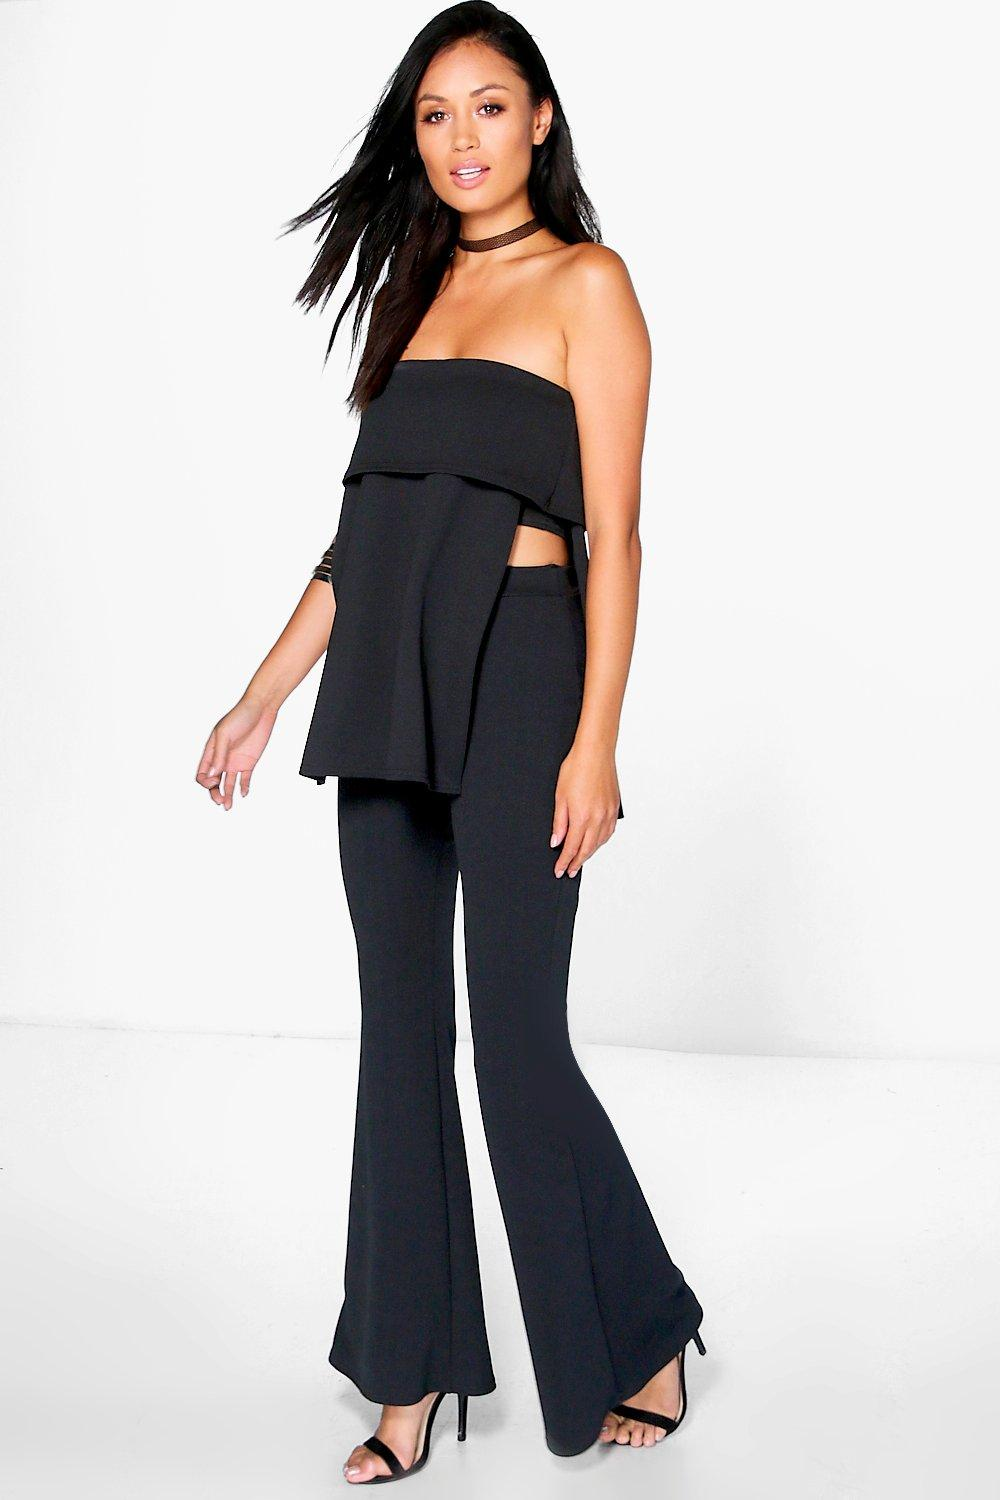 Elly Bandeau Layered Top And Flared Trouser Co-Ord